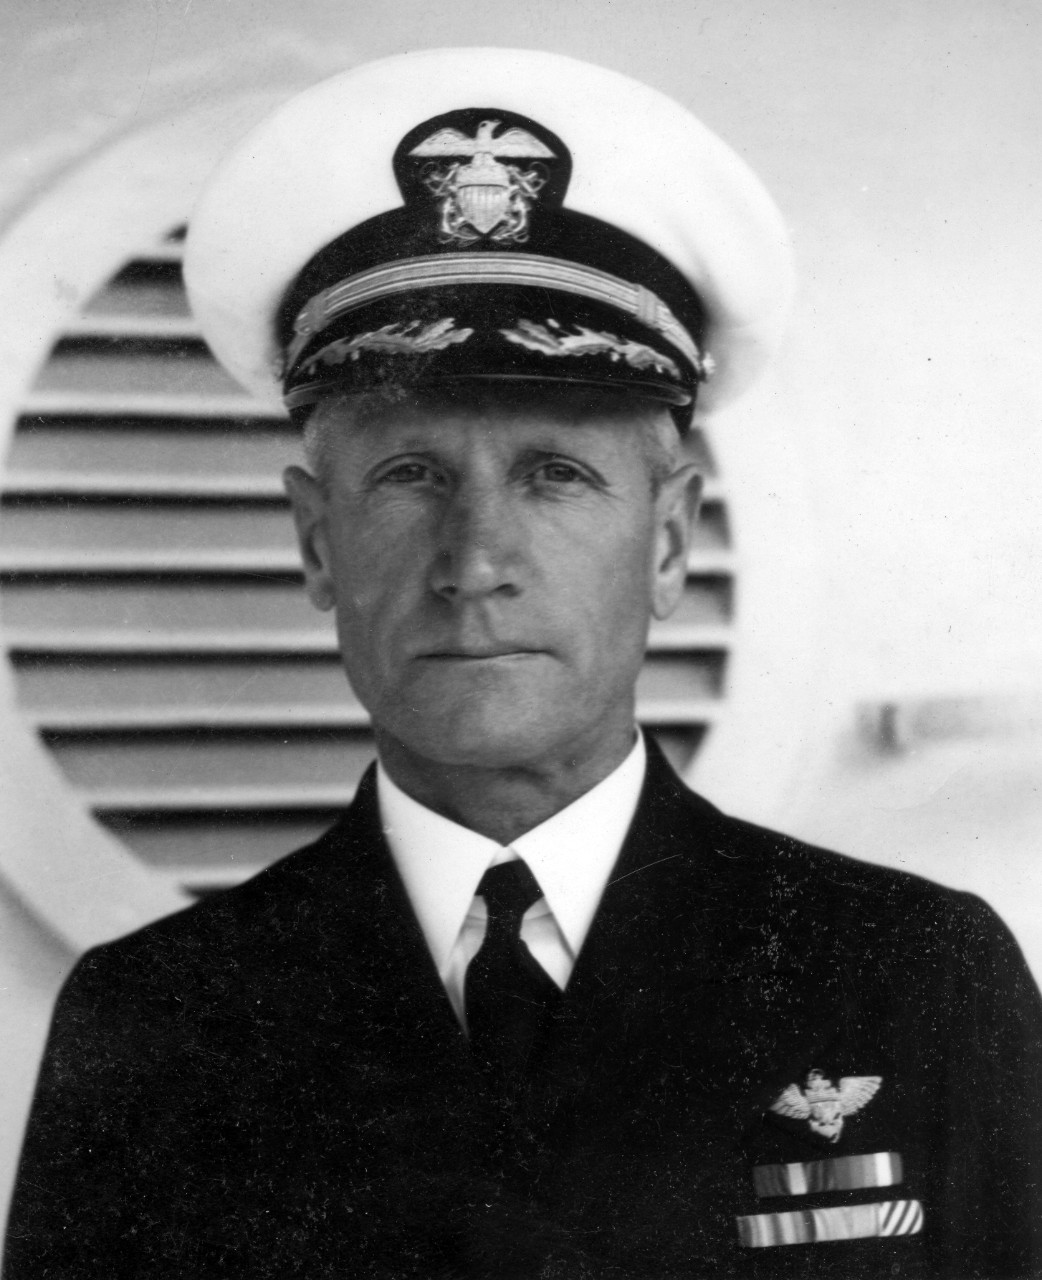 Collection of approximately 60 photographs related to Admiral Albert Cushing Read, the majority of which are from later in his career, prior to his retirement in 1946. The images include social events, tours, ceremonies, and group photos. Several early career photos include Read as a lieutenant and commander, including an early photo as young aviator. The collection also consists of many newspaper articles as well as personal letters and official naval records.